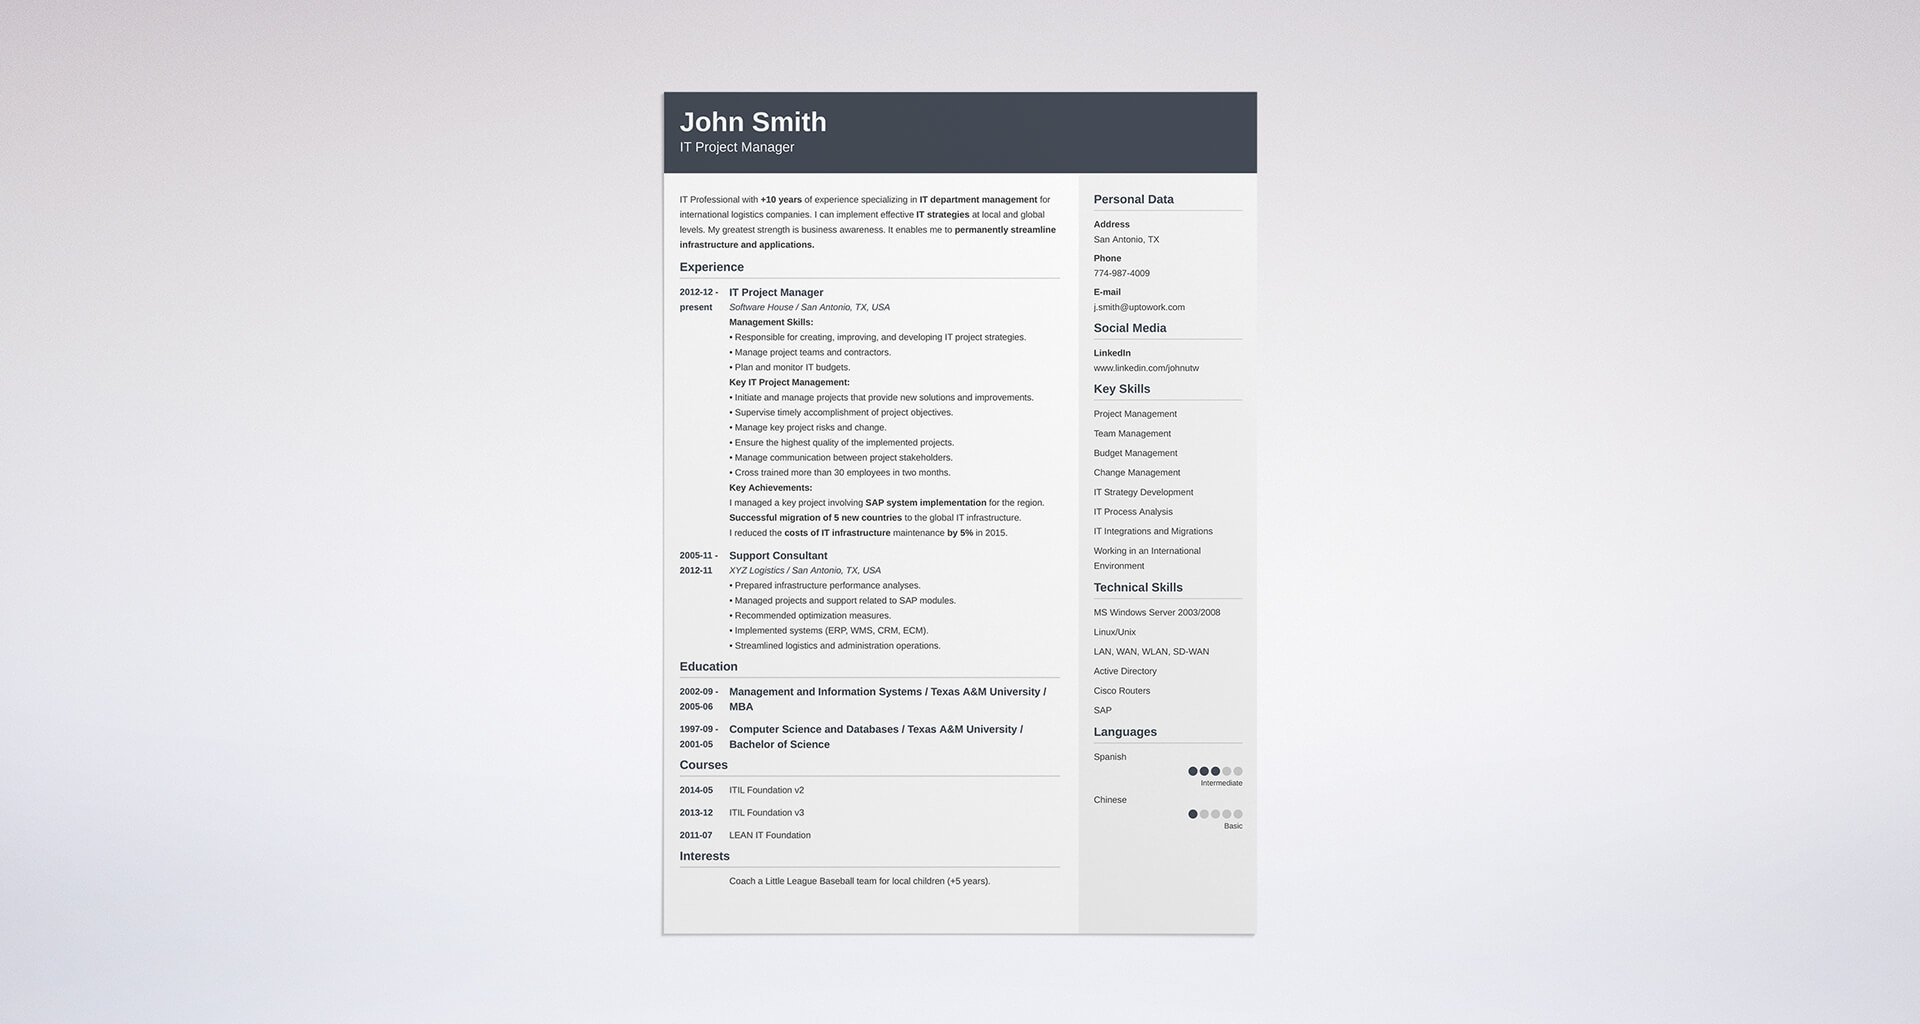 format of making resume